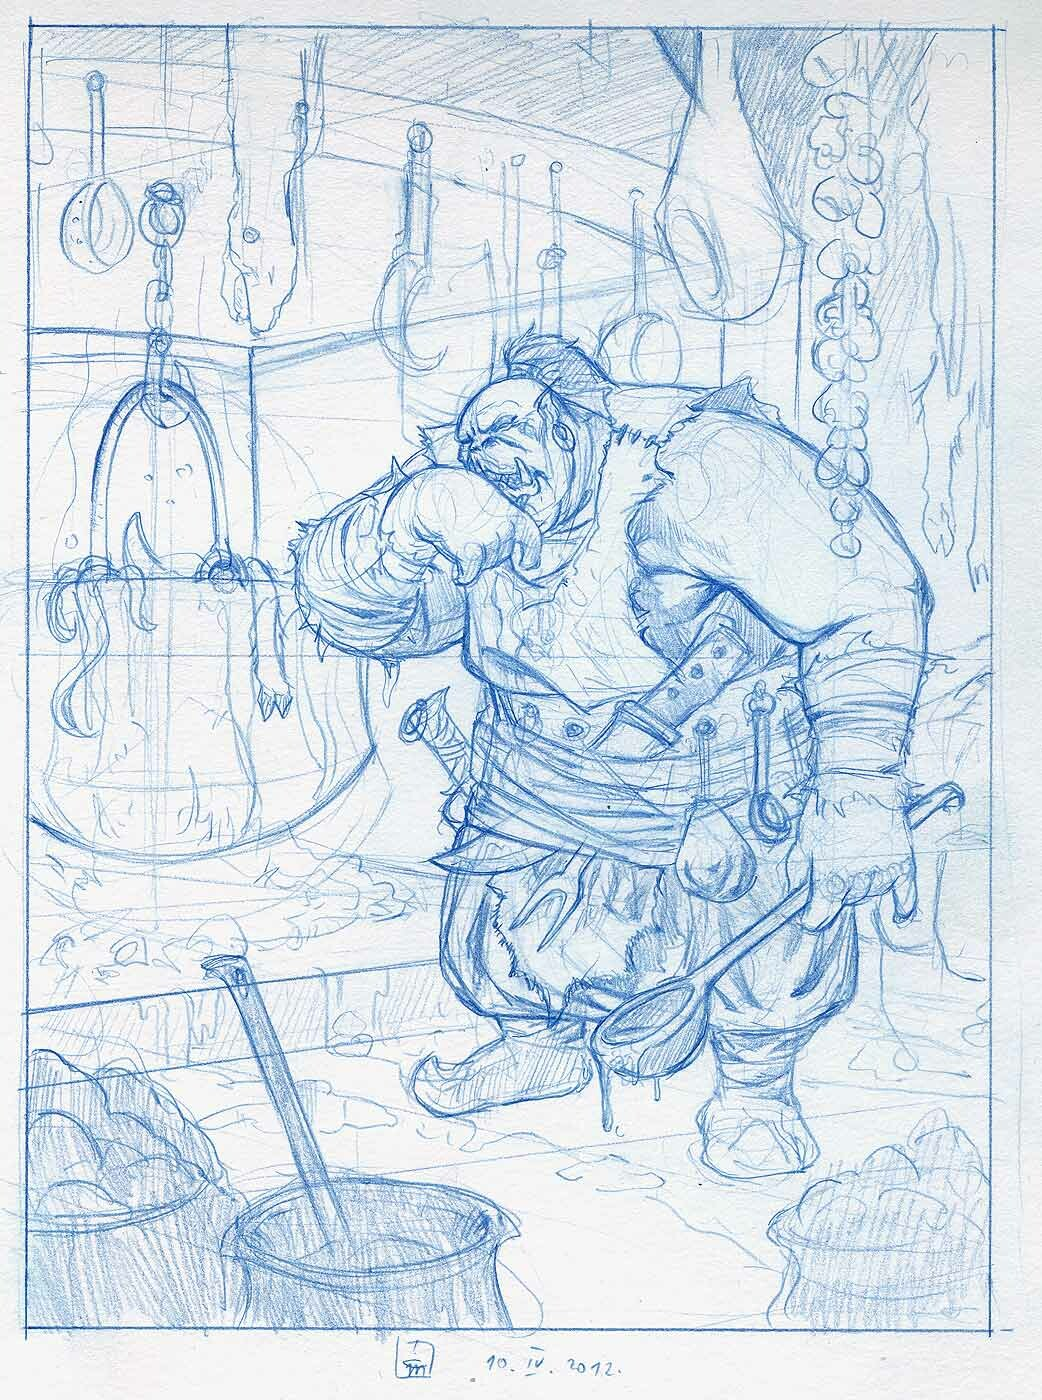 Orc Cook - © Milivoj Ćeran 2012.